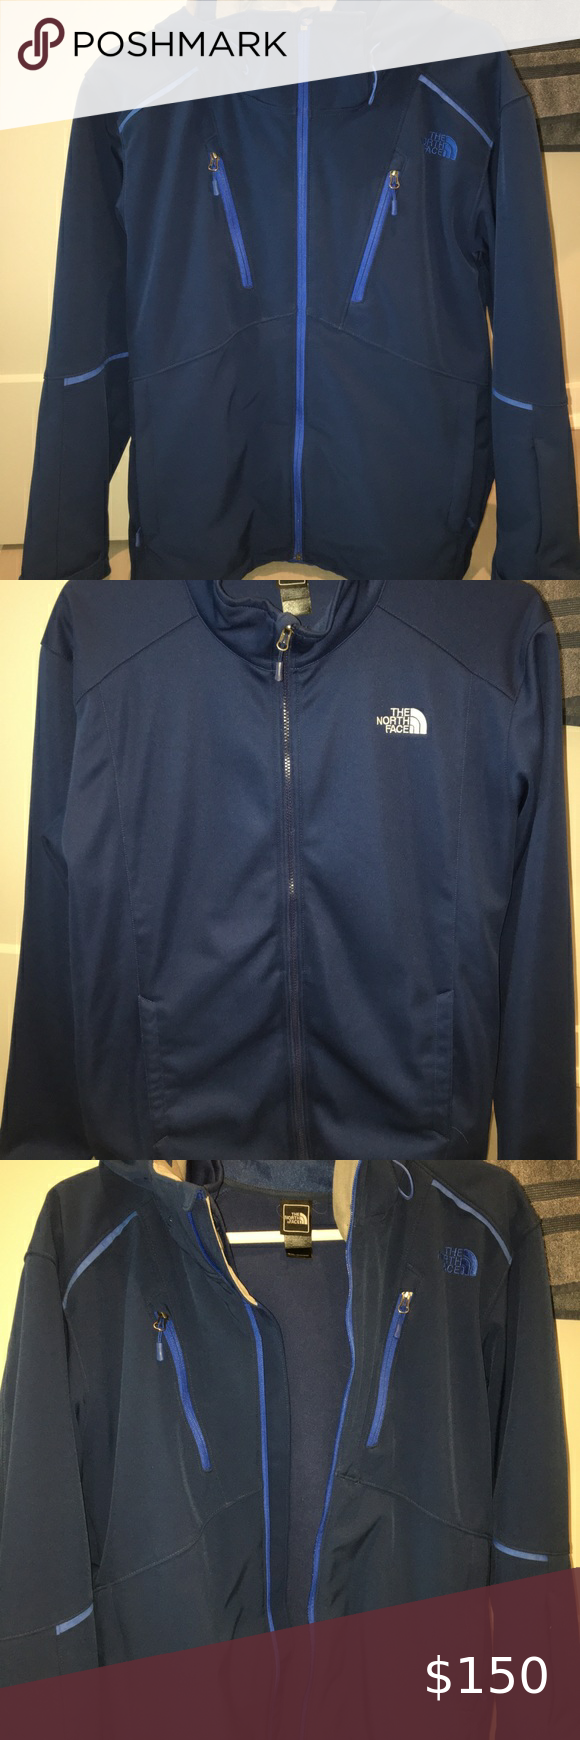 North Face Heavyweight 2 In 1 Jacket Jackets The North Face North Face Jacket [ 1740 x 580 Pixel ]